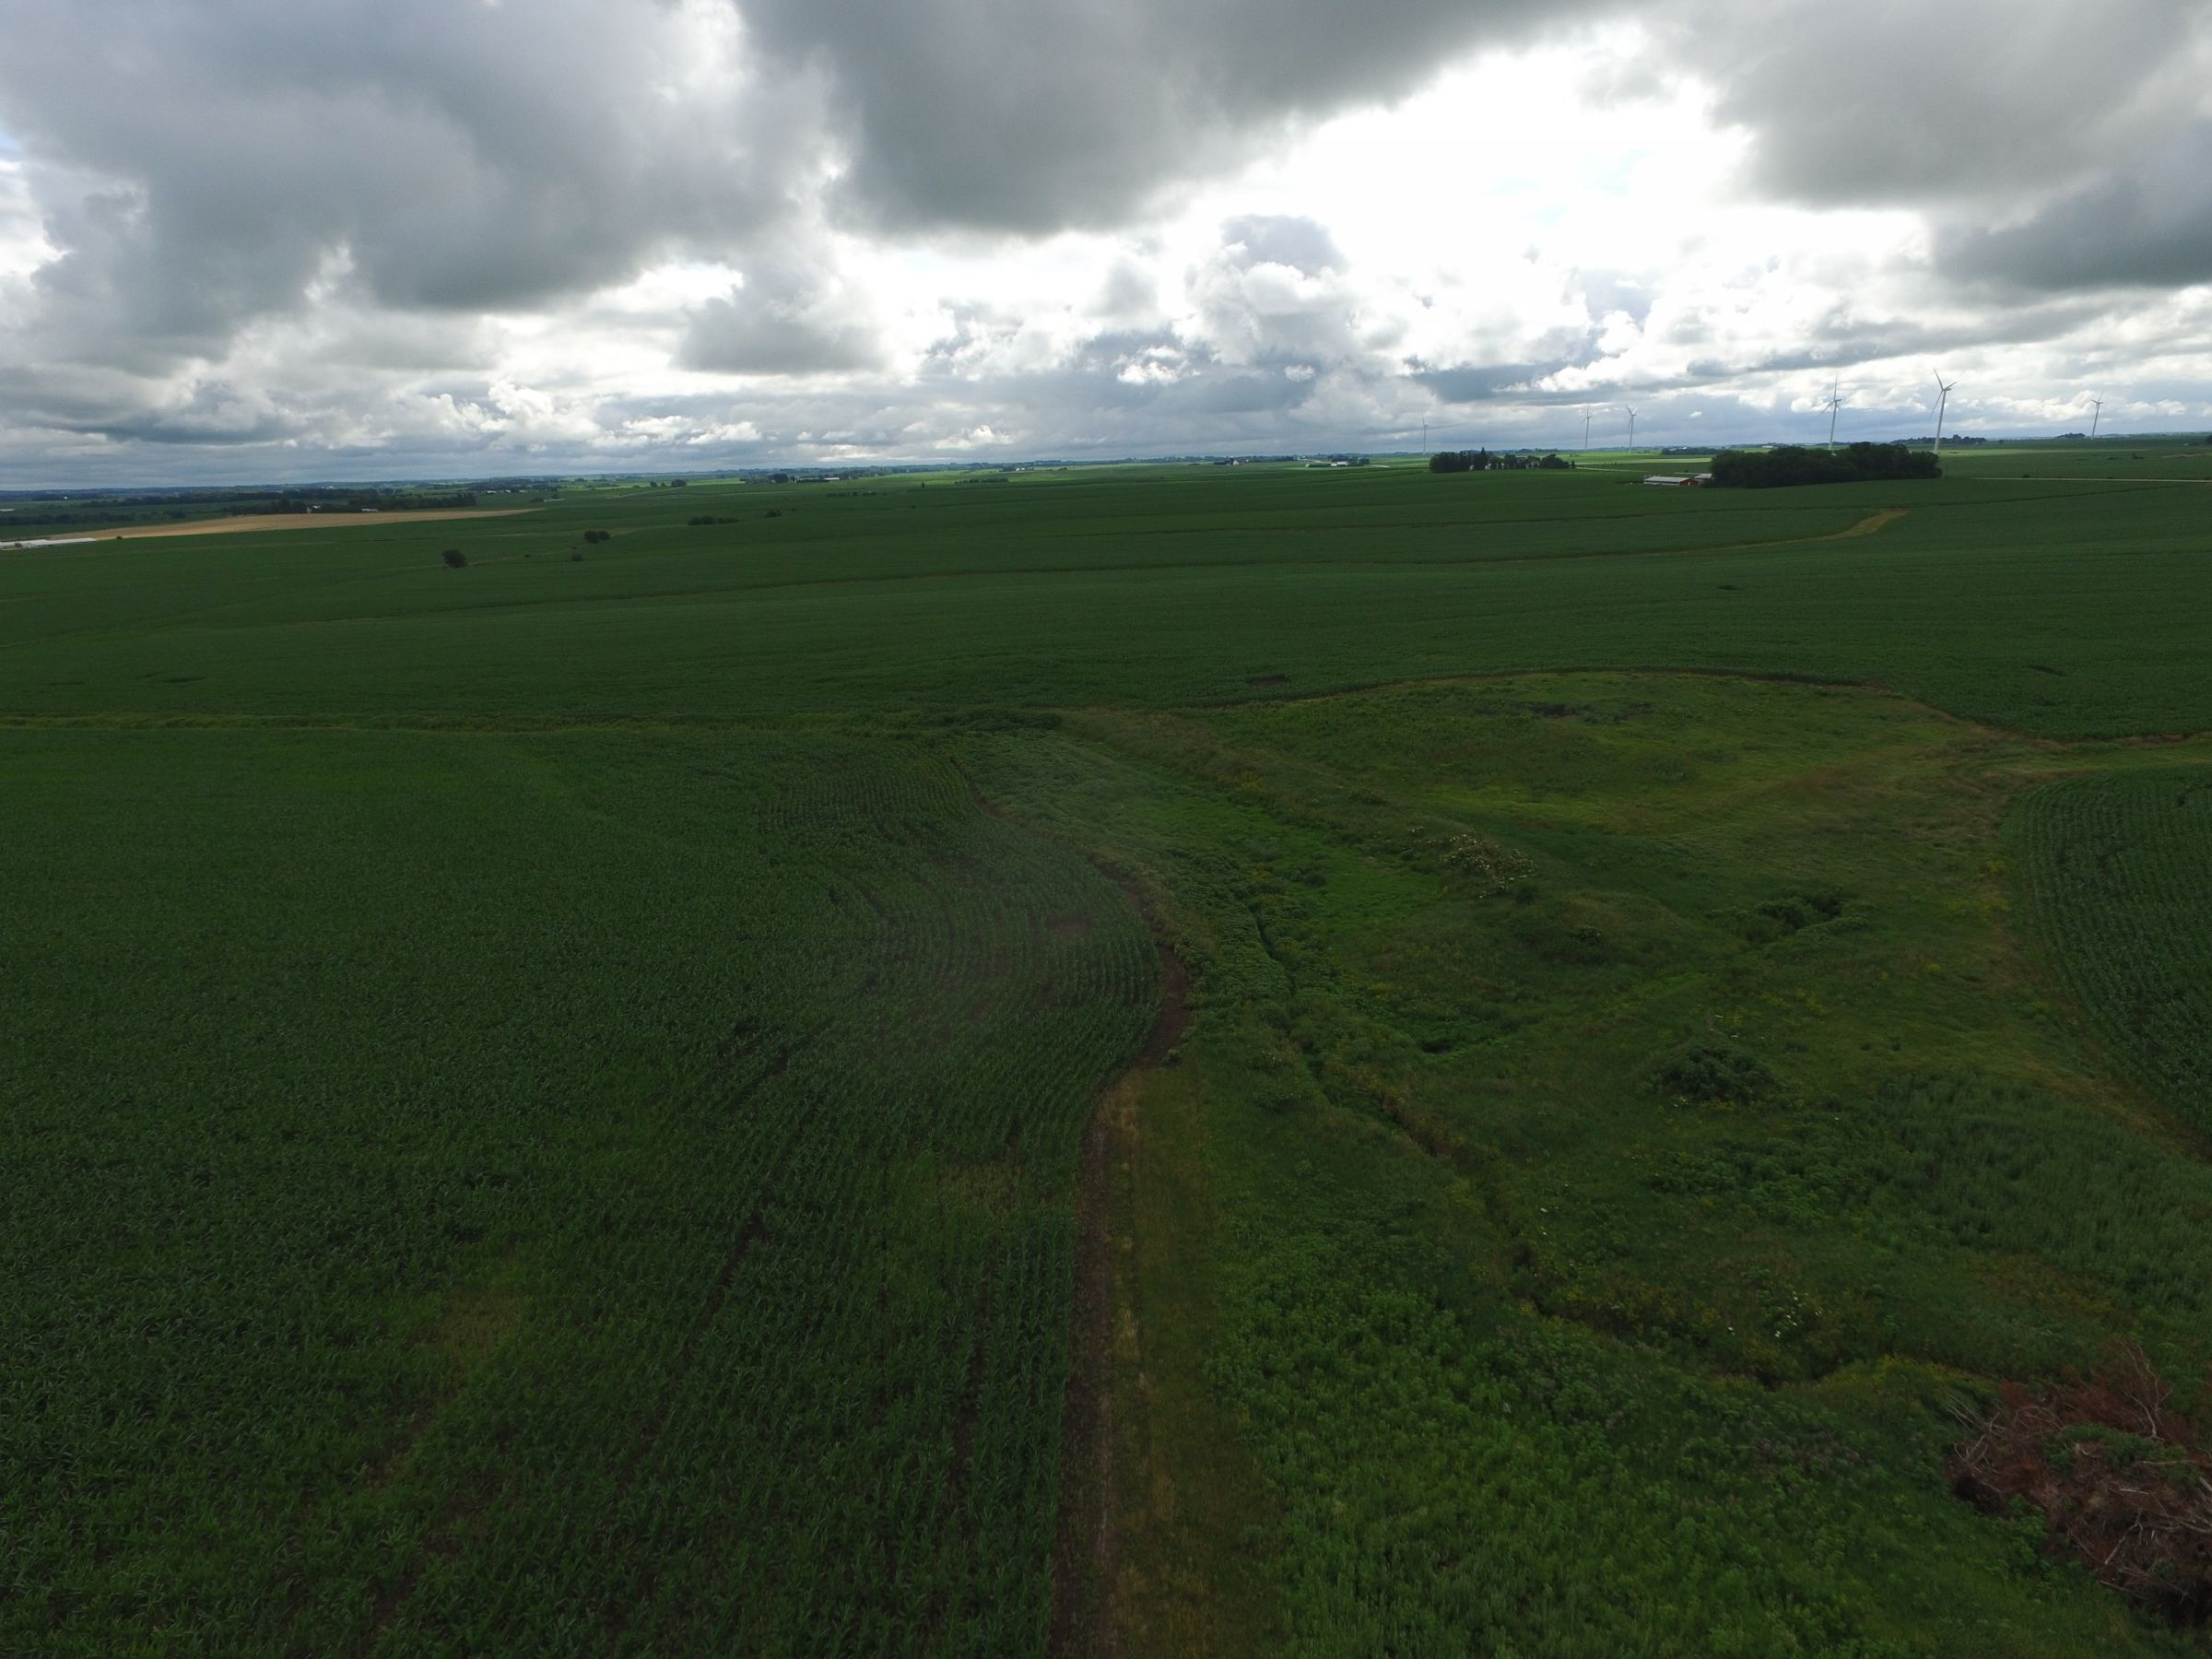 auctions-land-floyd-county-iowa-112-acres-listing-number-15630-15-2021-07-13-192259.JPG